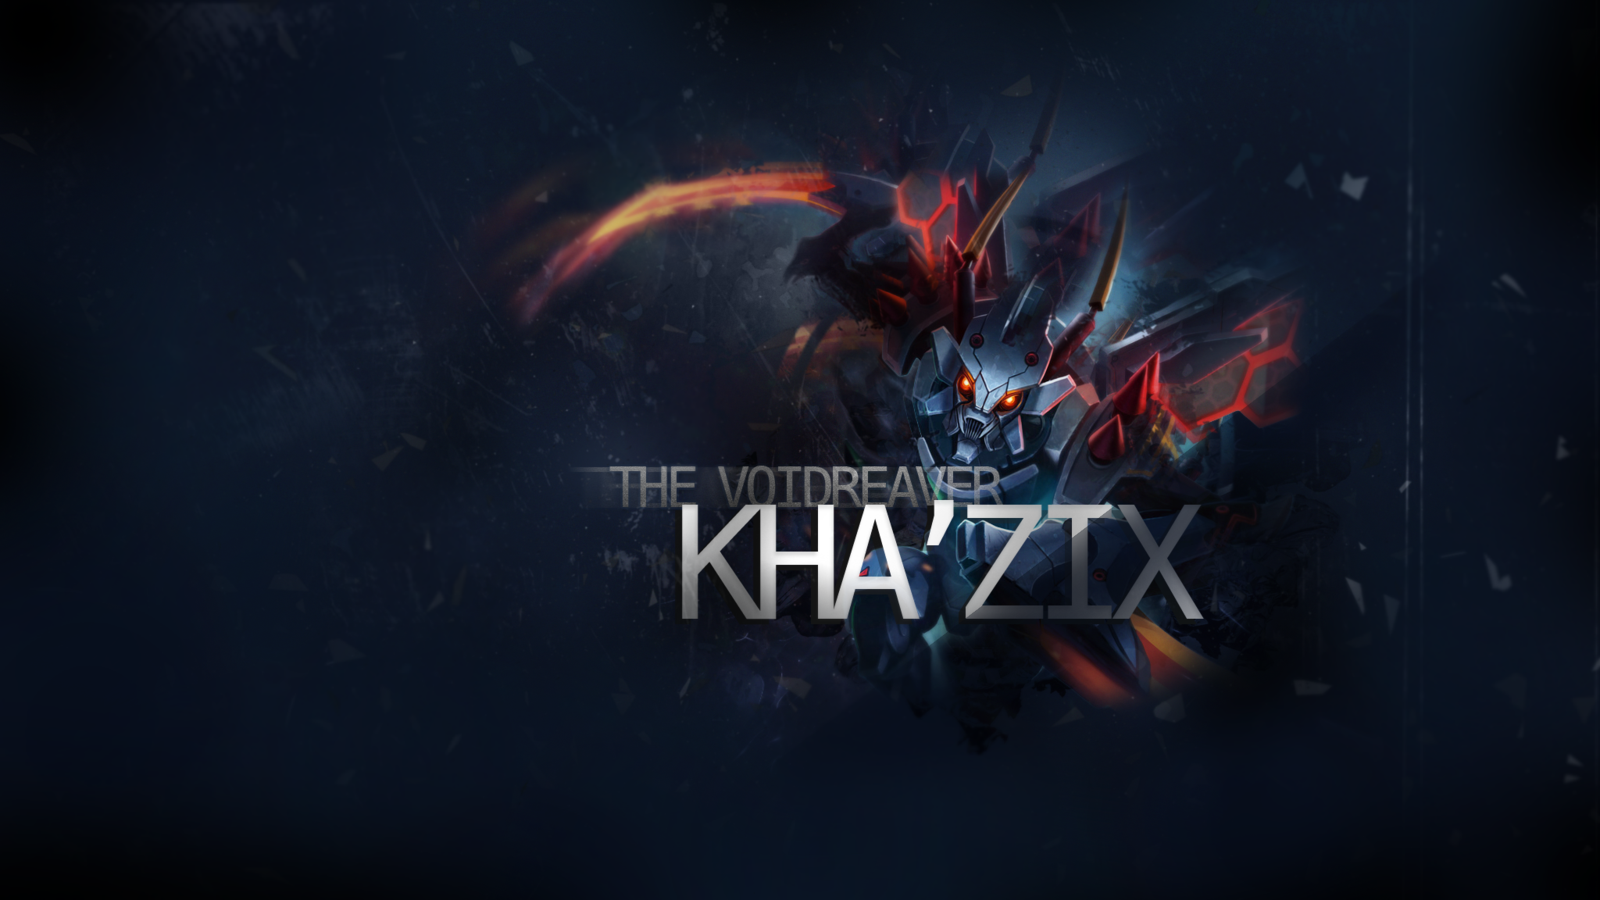 KhaZix League of Legends Wallpaper